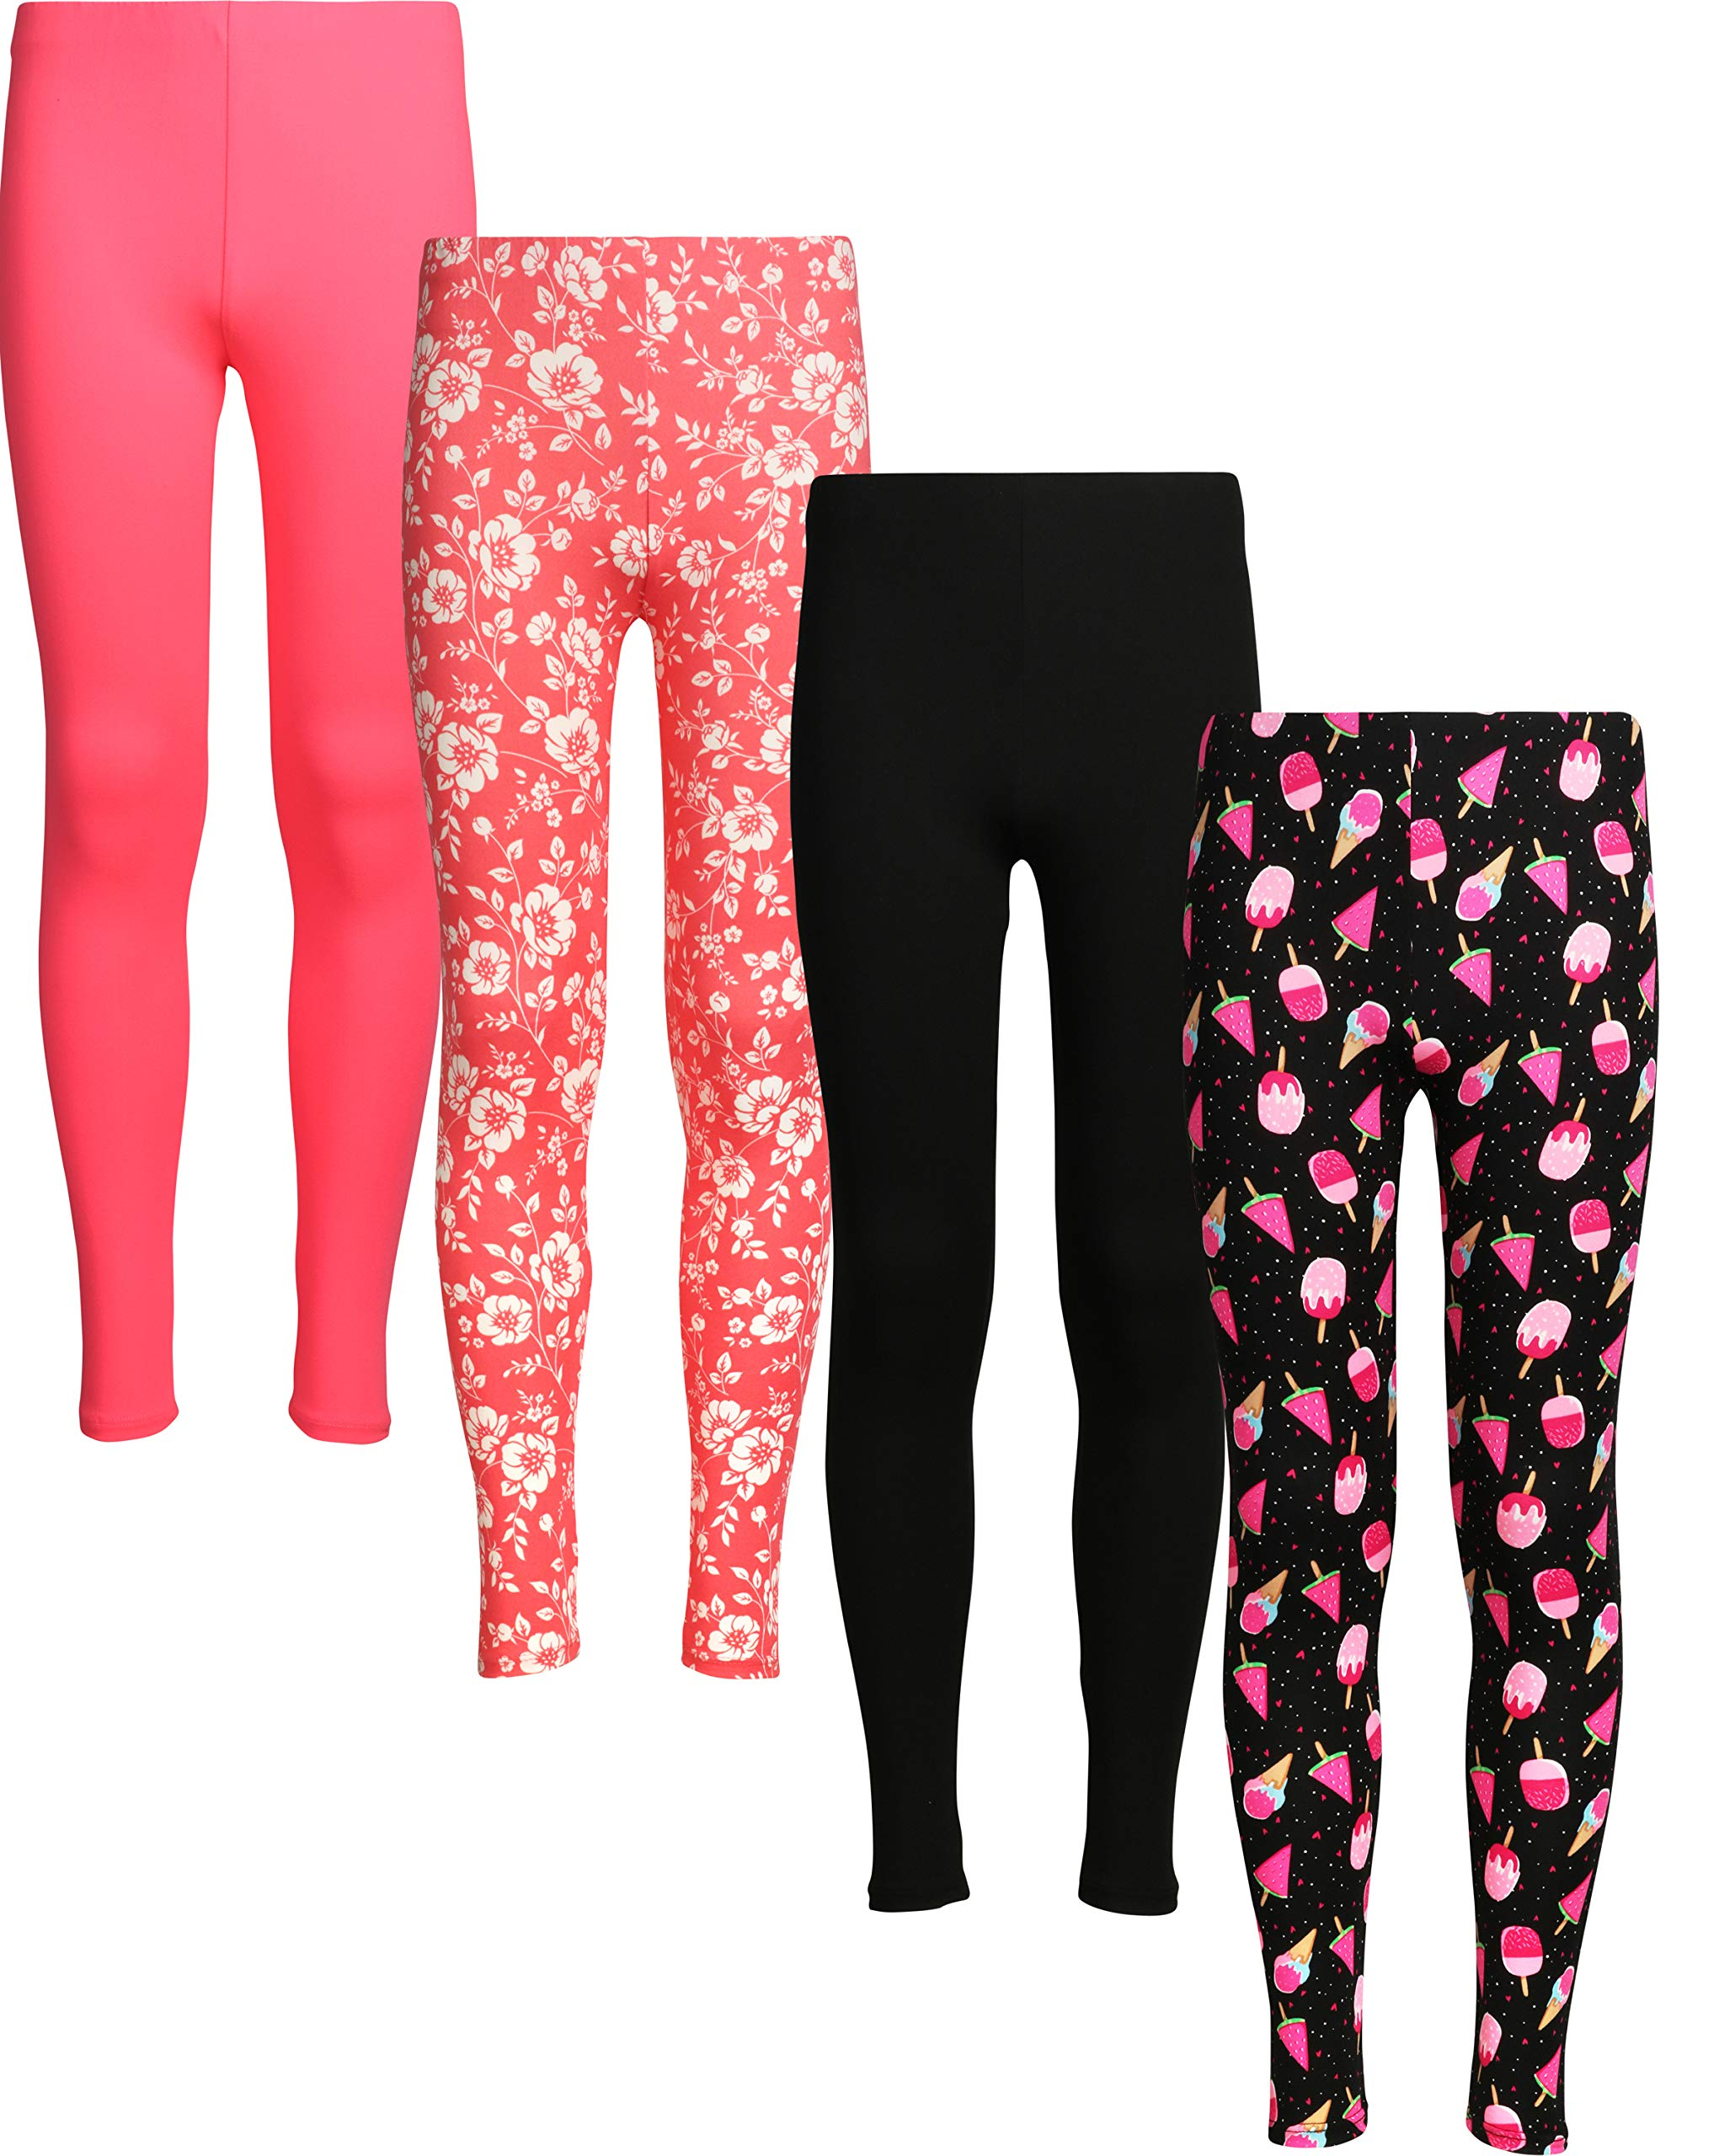 dELiA*s 4 Pack Girl's Basic Yummy Active Leggings (Solids & Prints) (10/12, Ice Cream/Flowers)' by dELiA*s